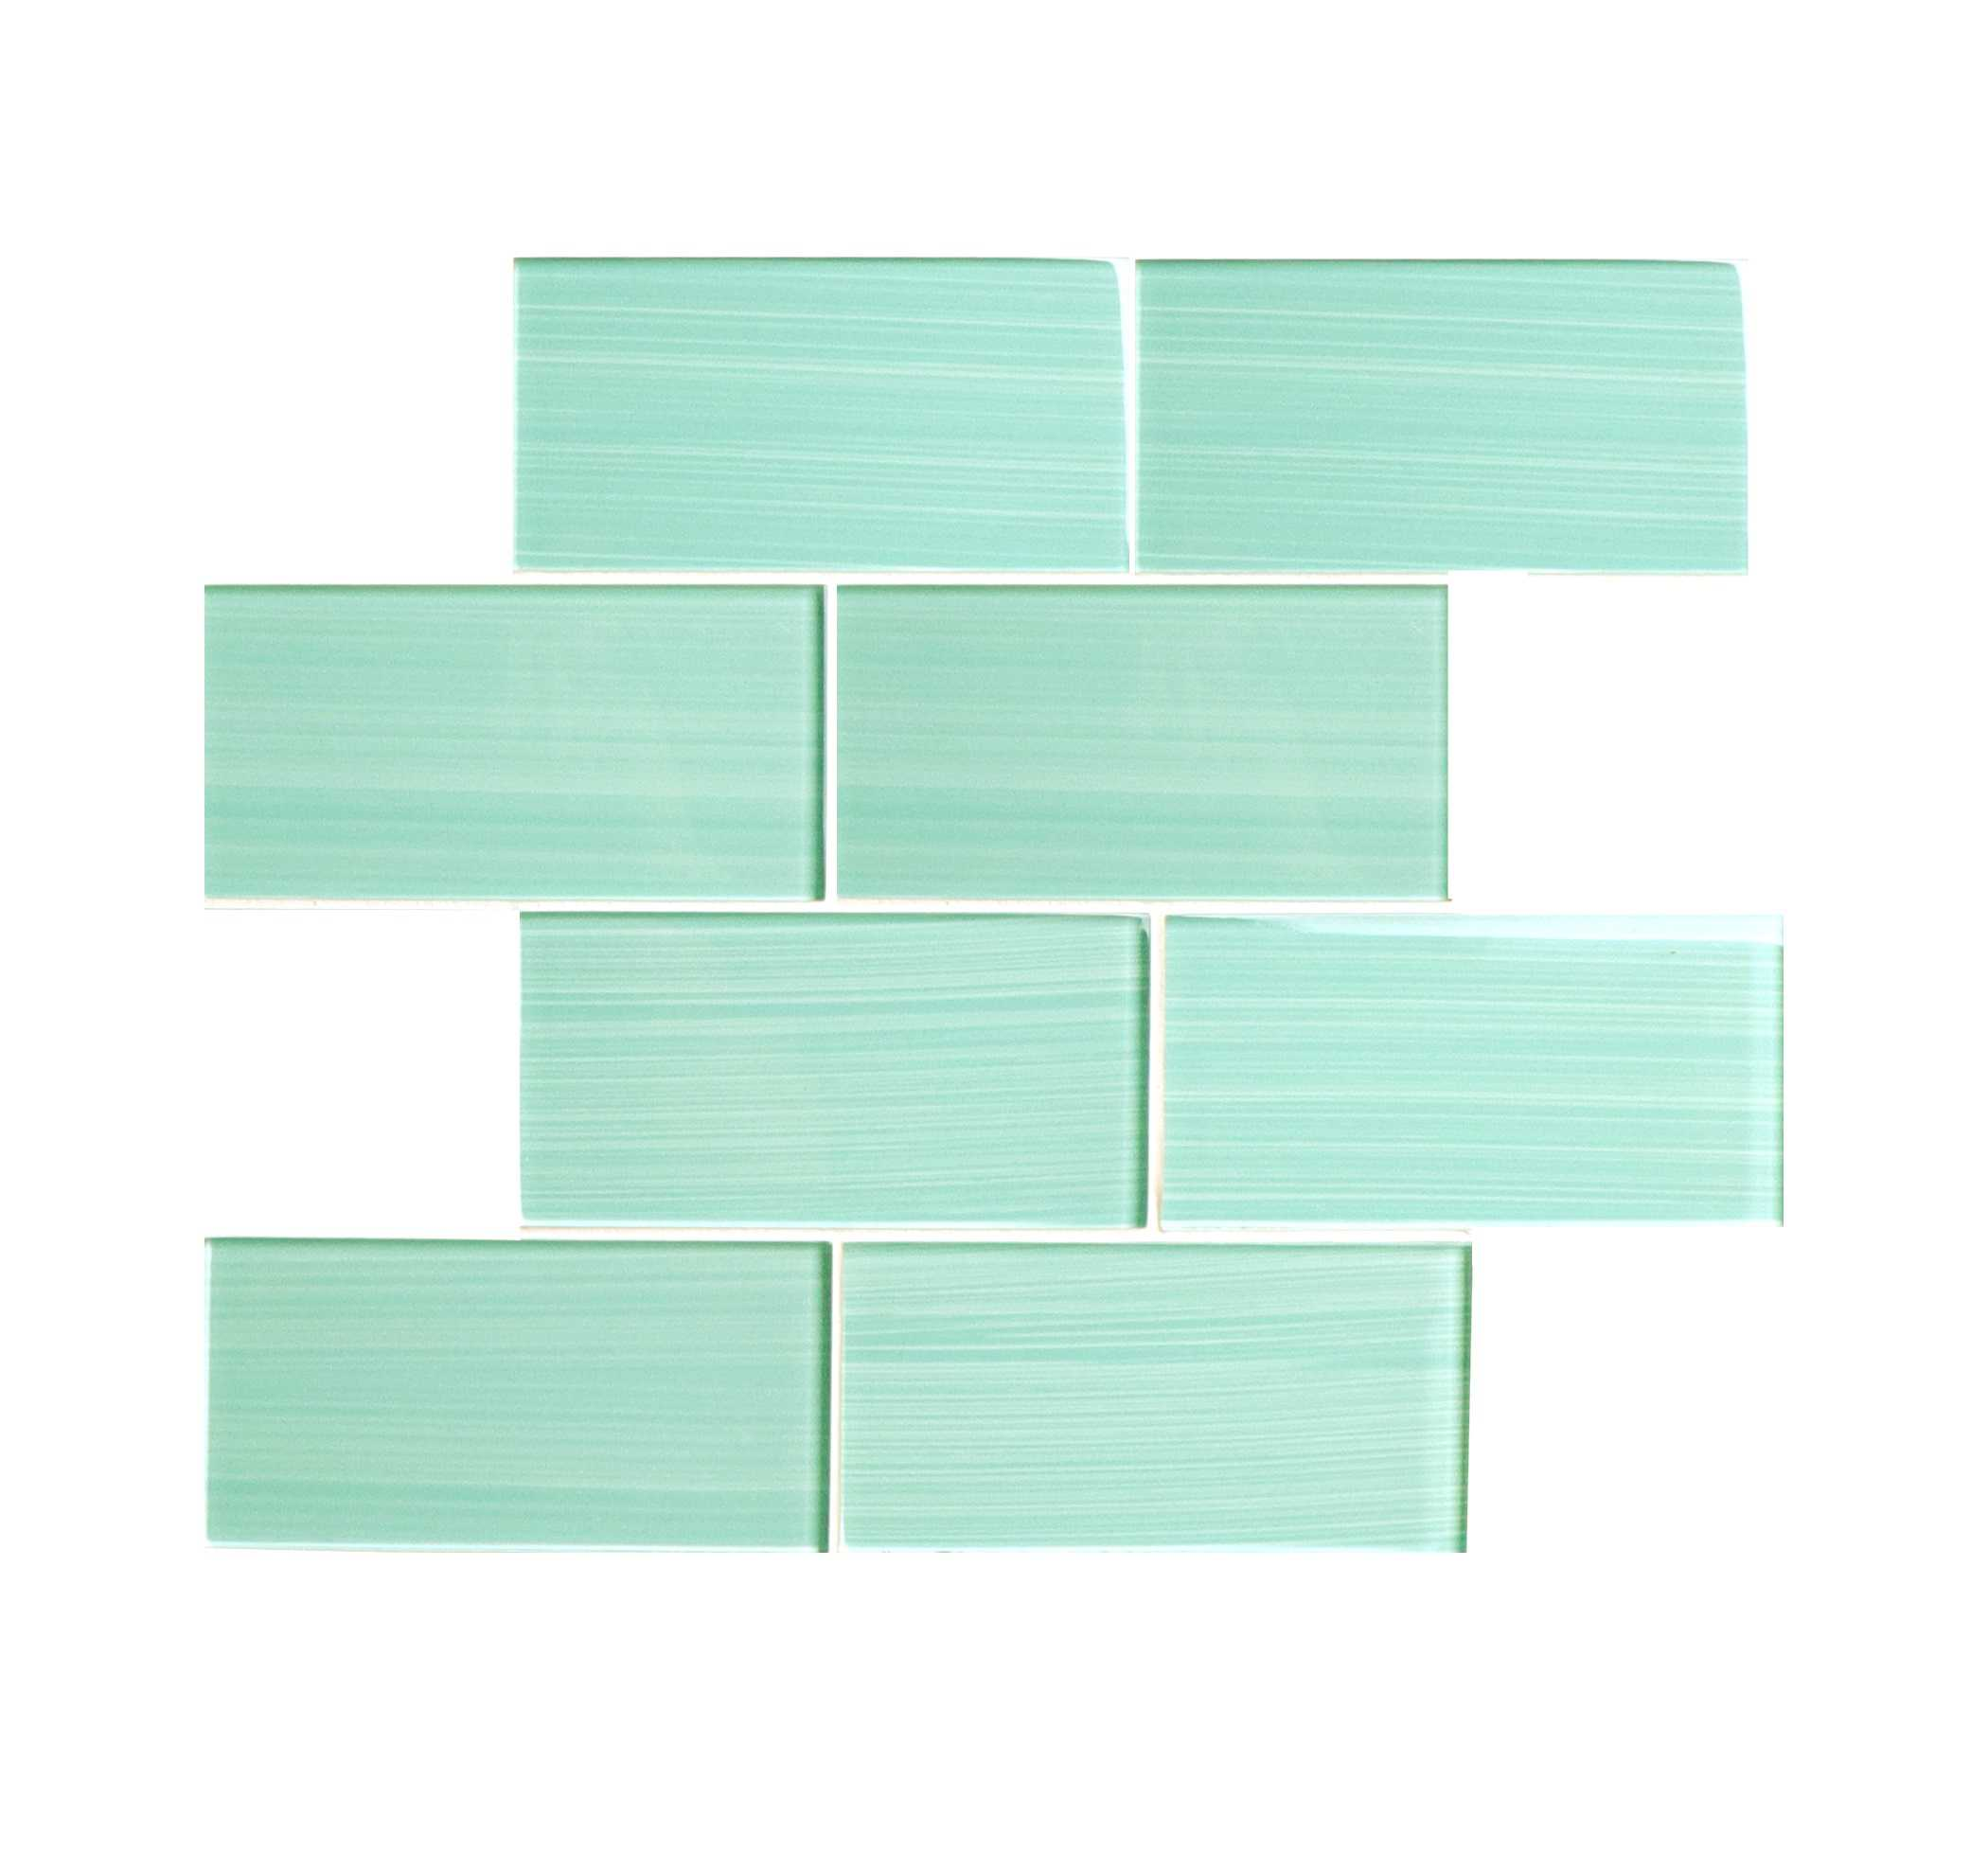 Hand Painted Series 3' x 6' Glass Subway Tile in Light Teal - 5 square feet carton